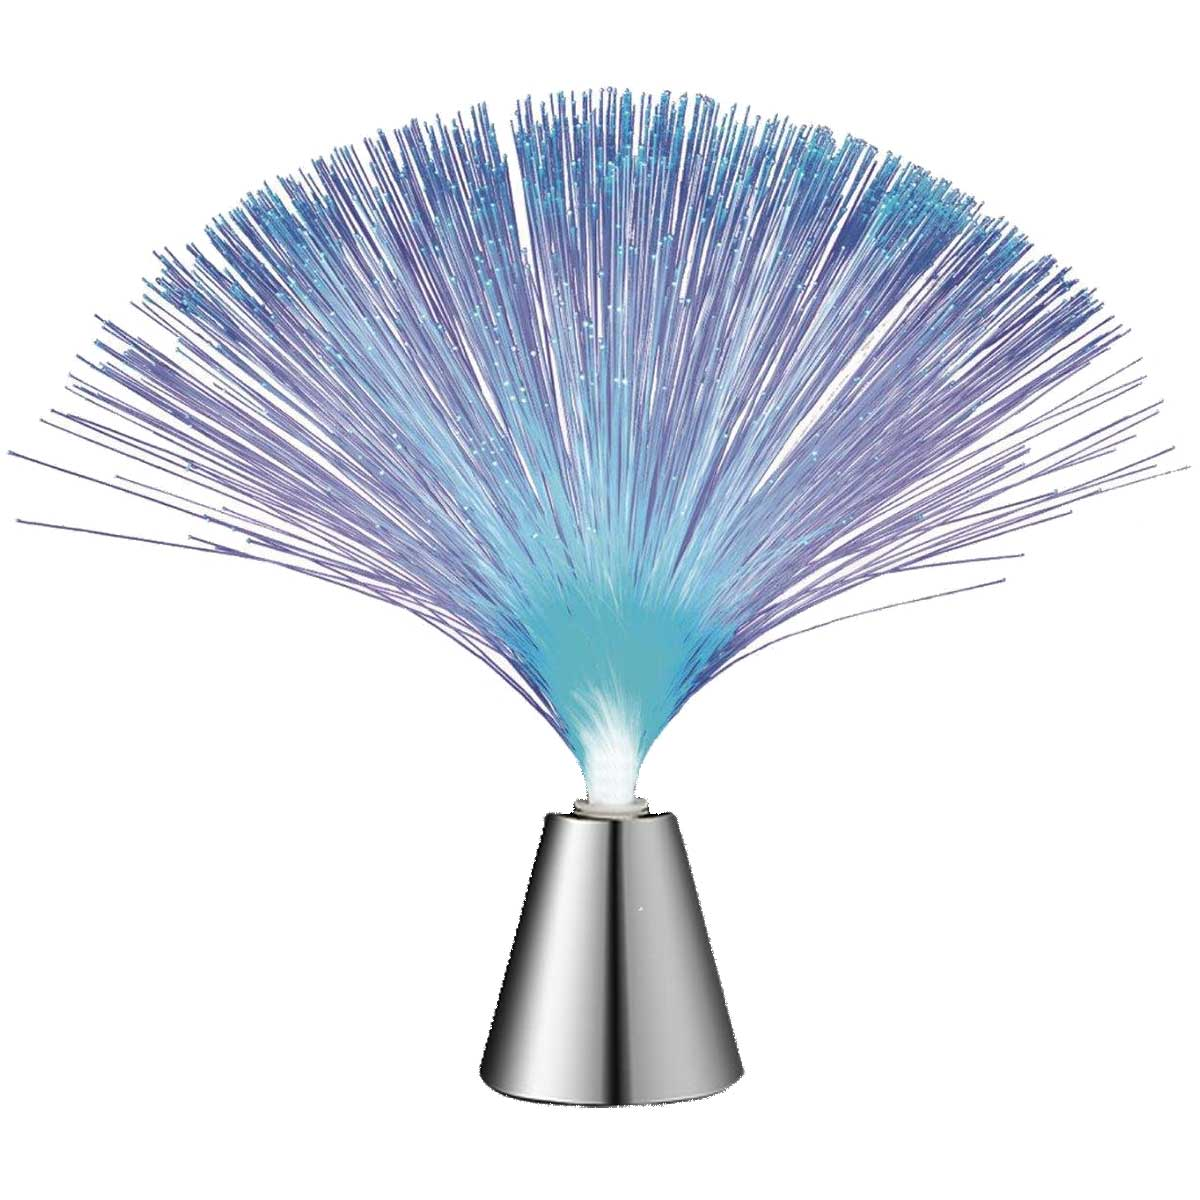 "Fiber Optic Light Up LED 13"" Silver Cone Battery Operated Centerpiece Lamp, Multi-Color"